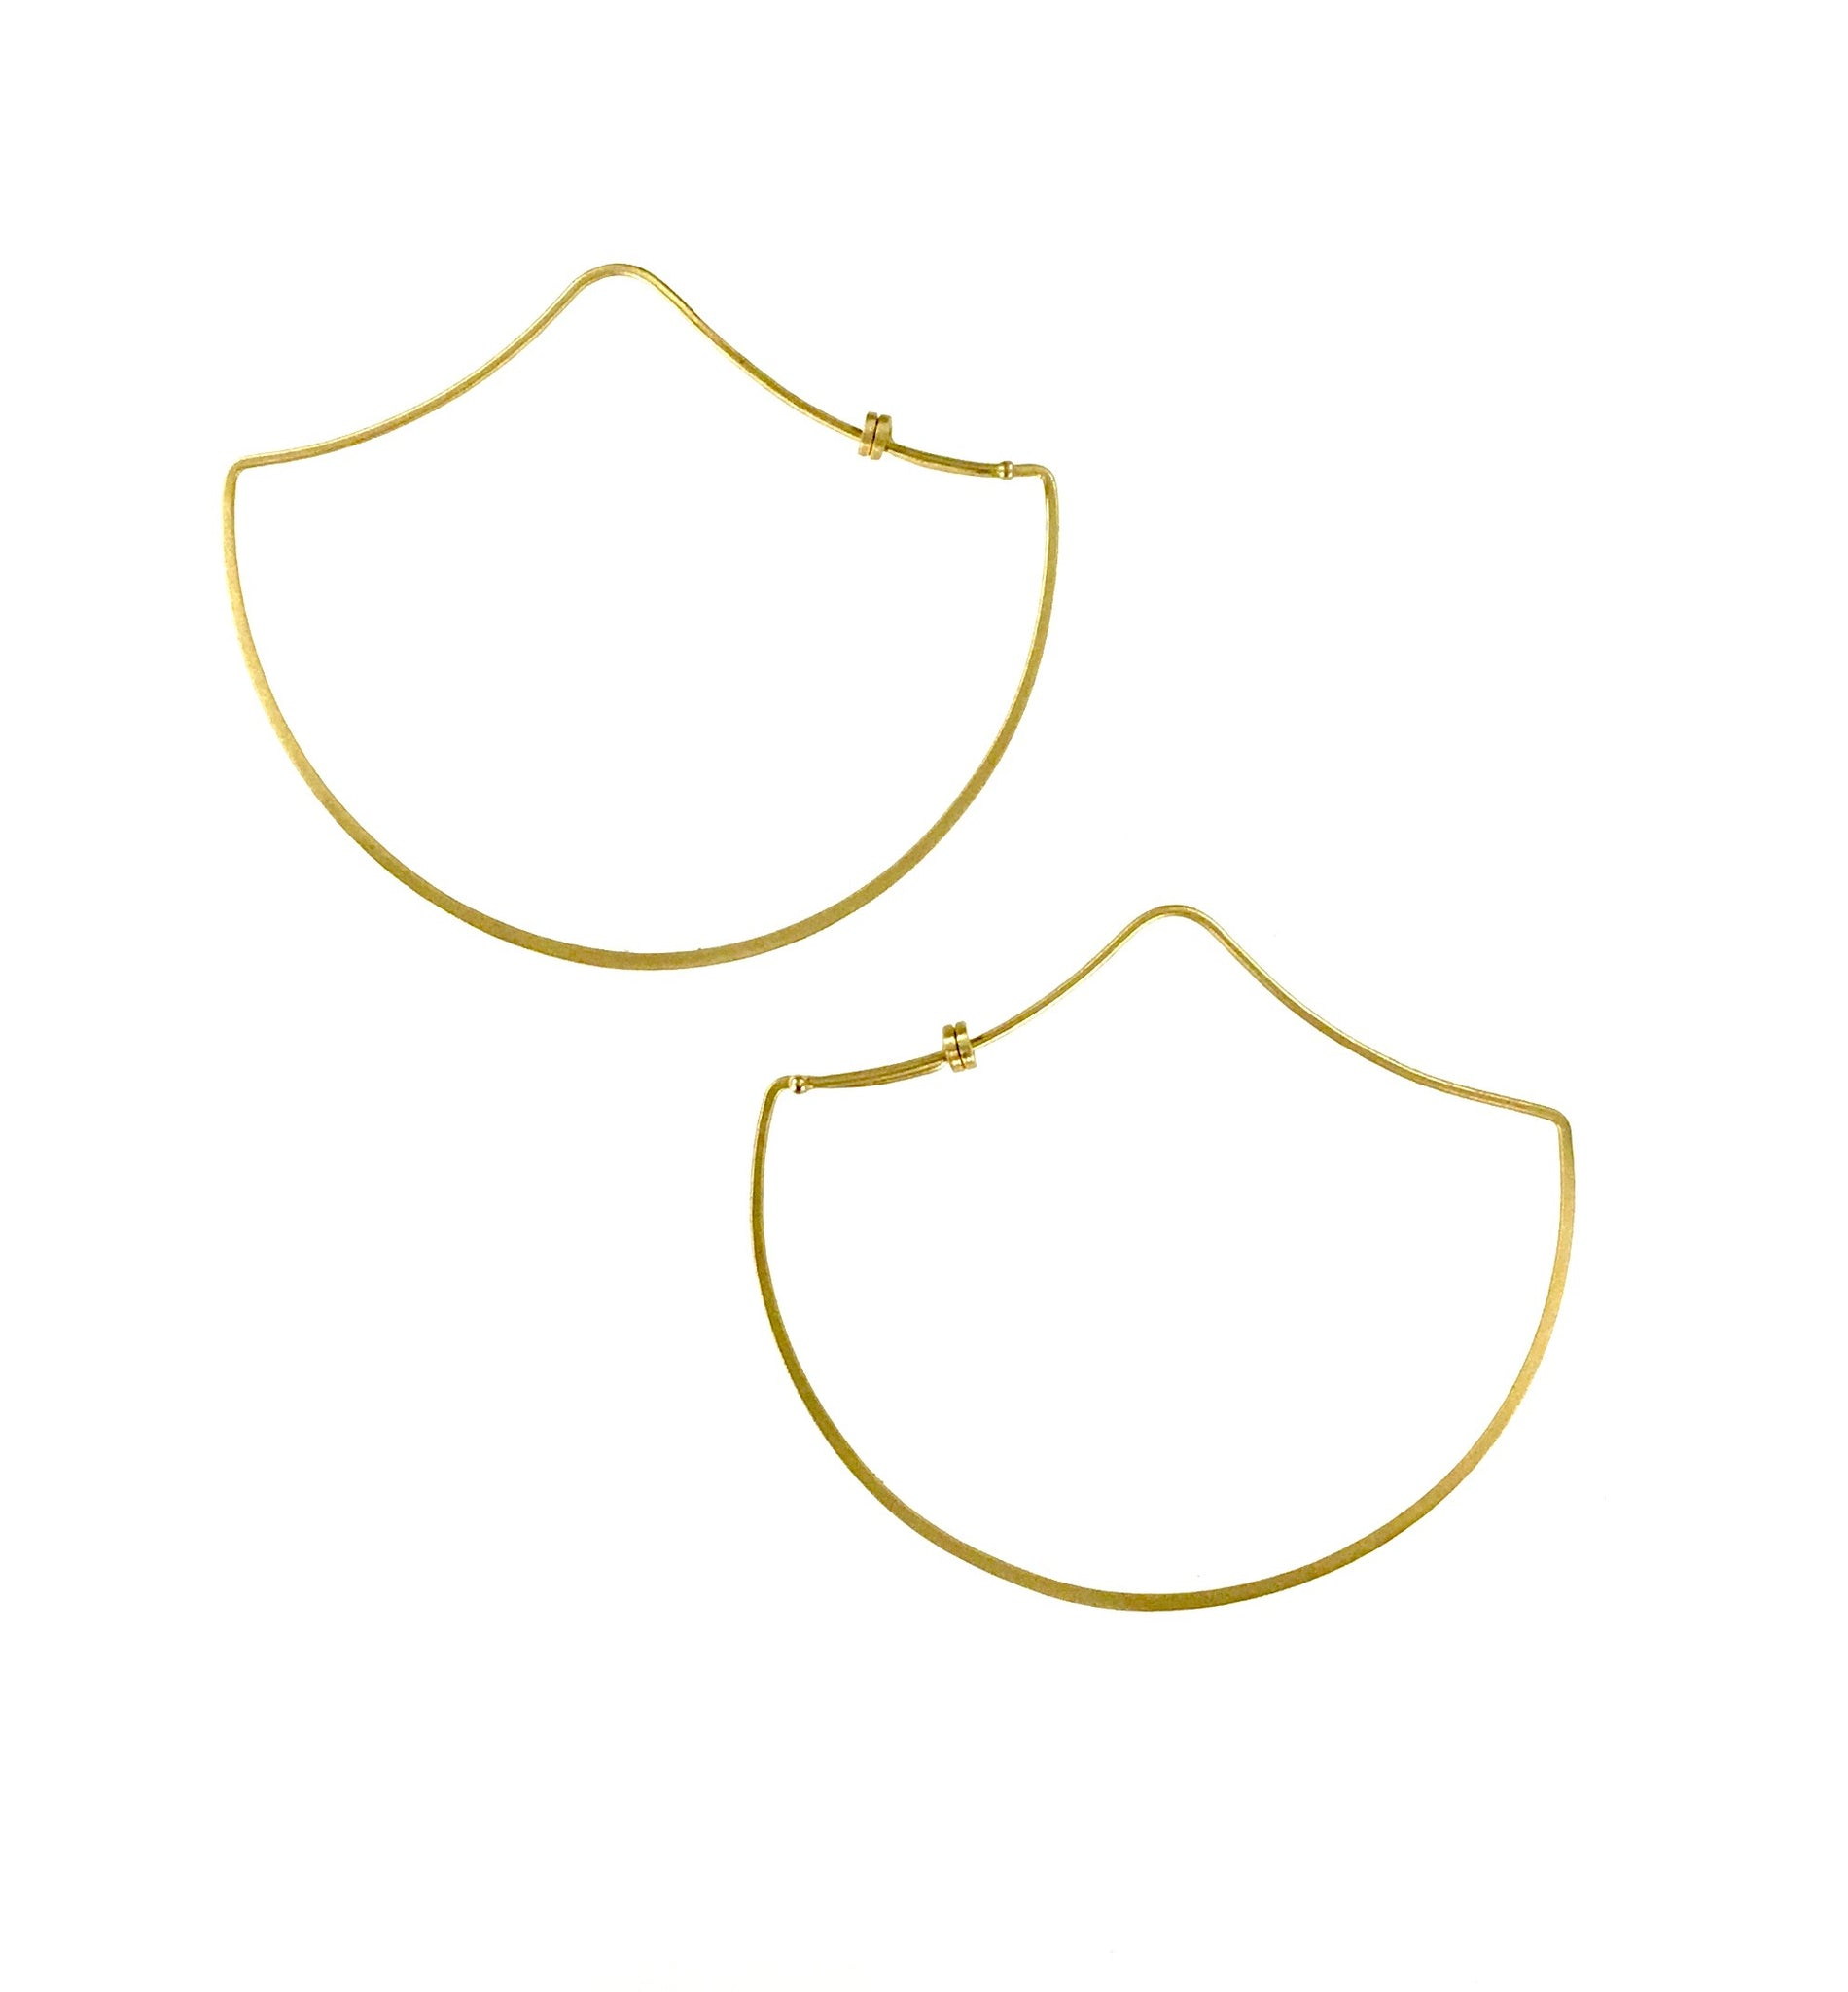 Carla Caruso 14K Ogee Dainty Hoop Earrings (SOLD)